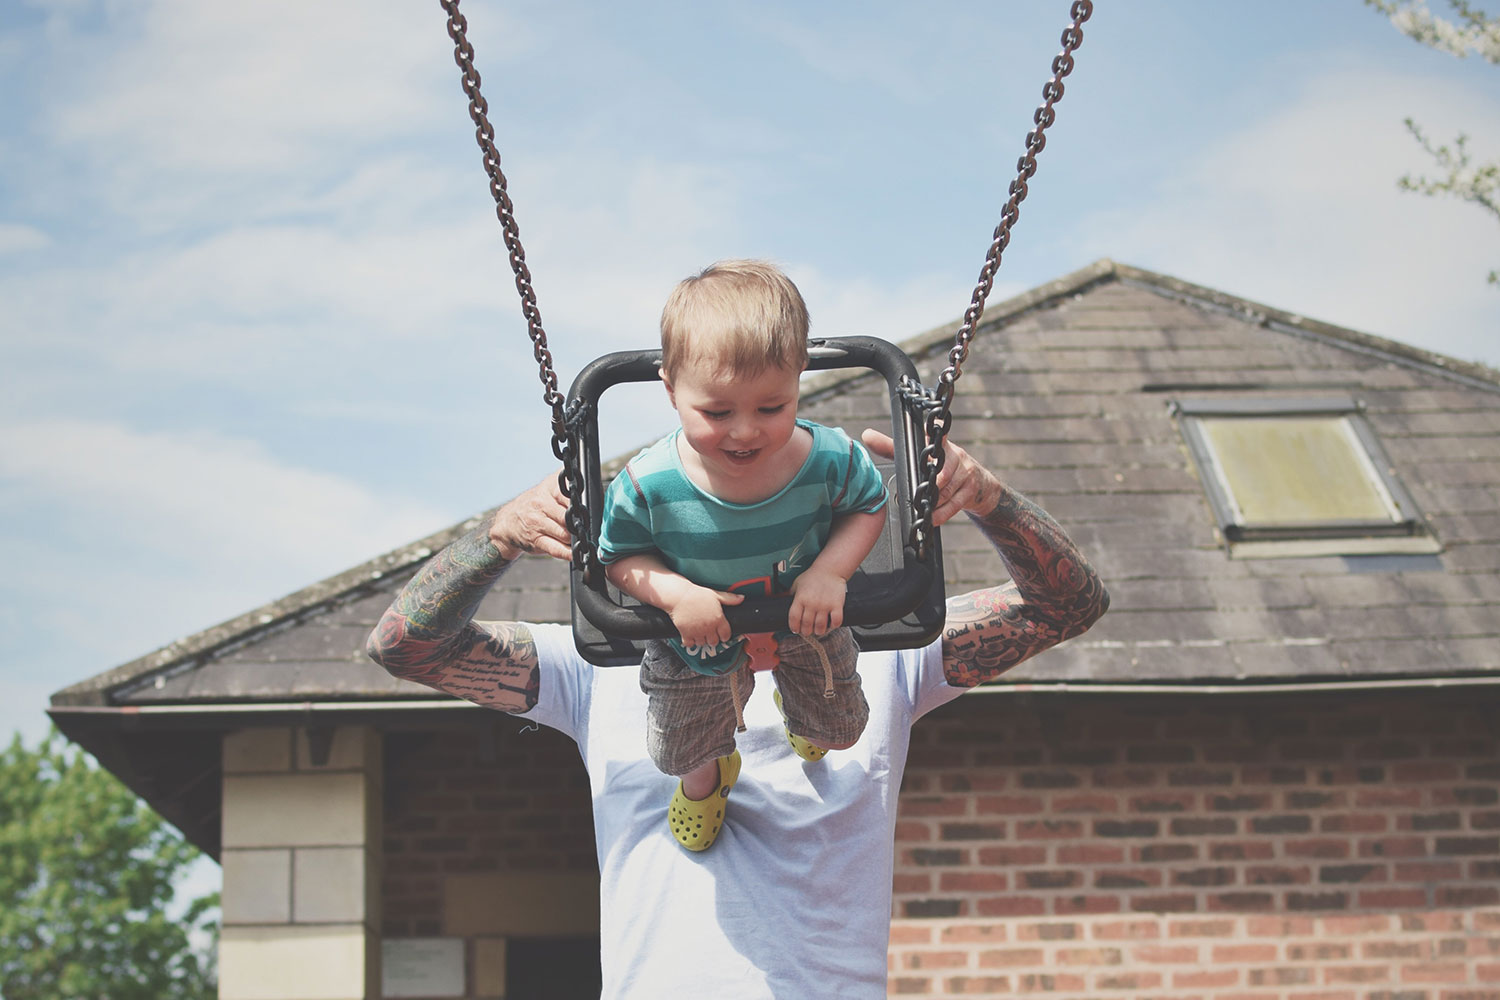 One Beautiful Sweaty Sunday at Stratford-upon-Avon - Toddler laughing and giggling being pushed on swing by Grandad at Stratford-upon-Avon park